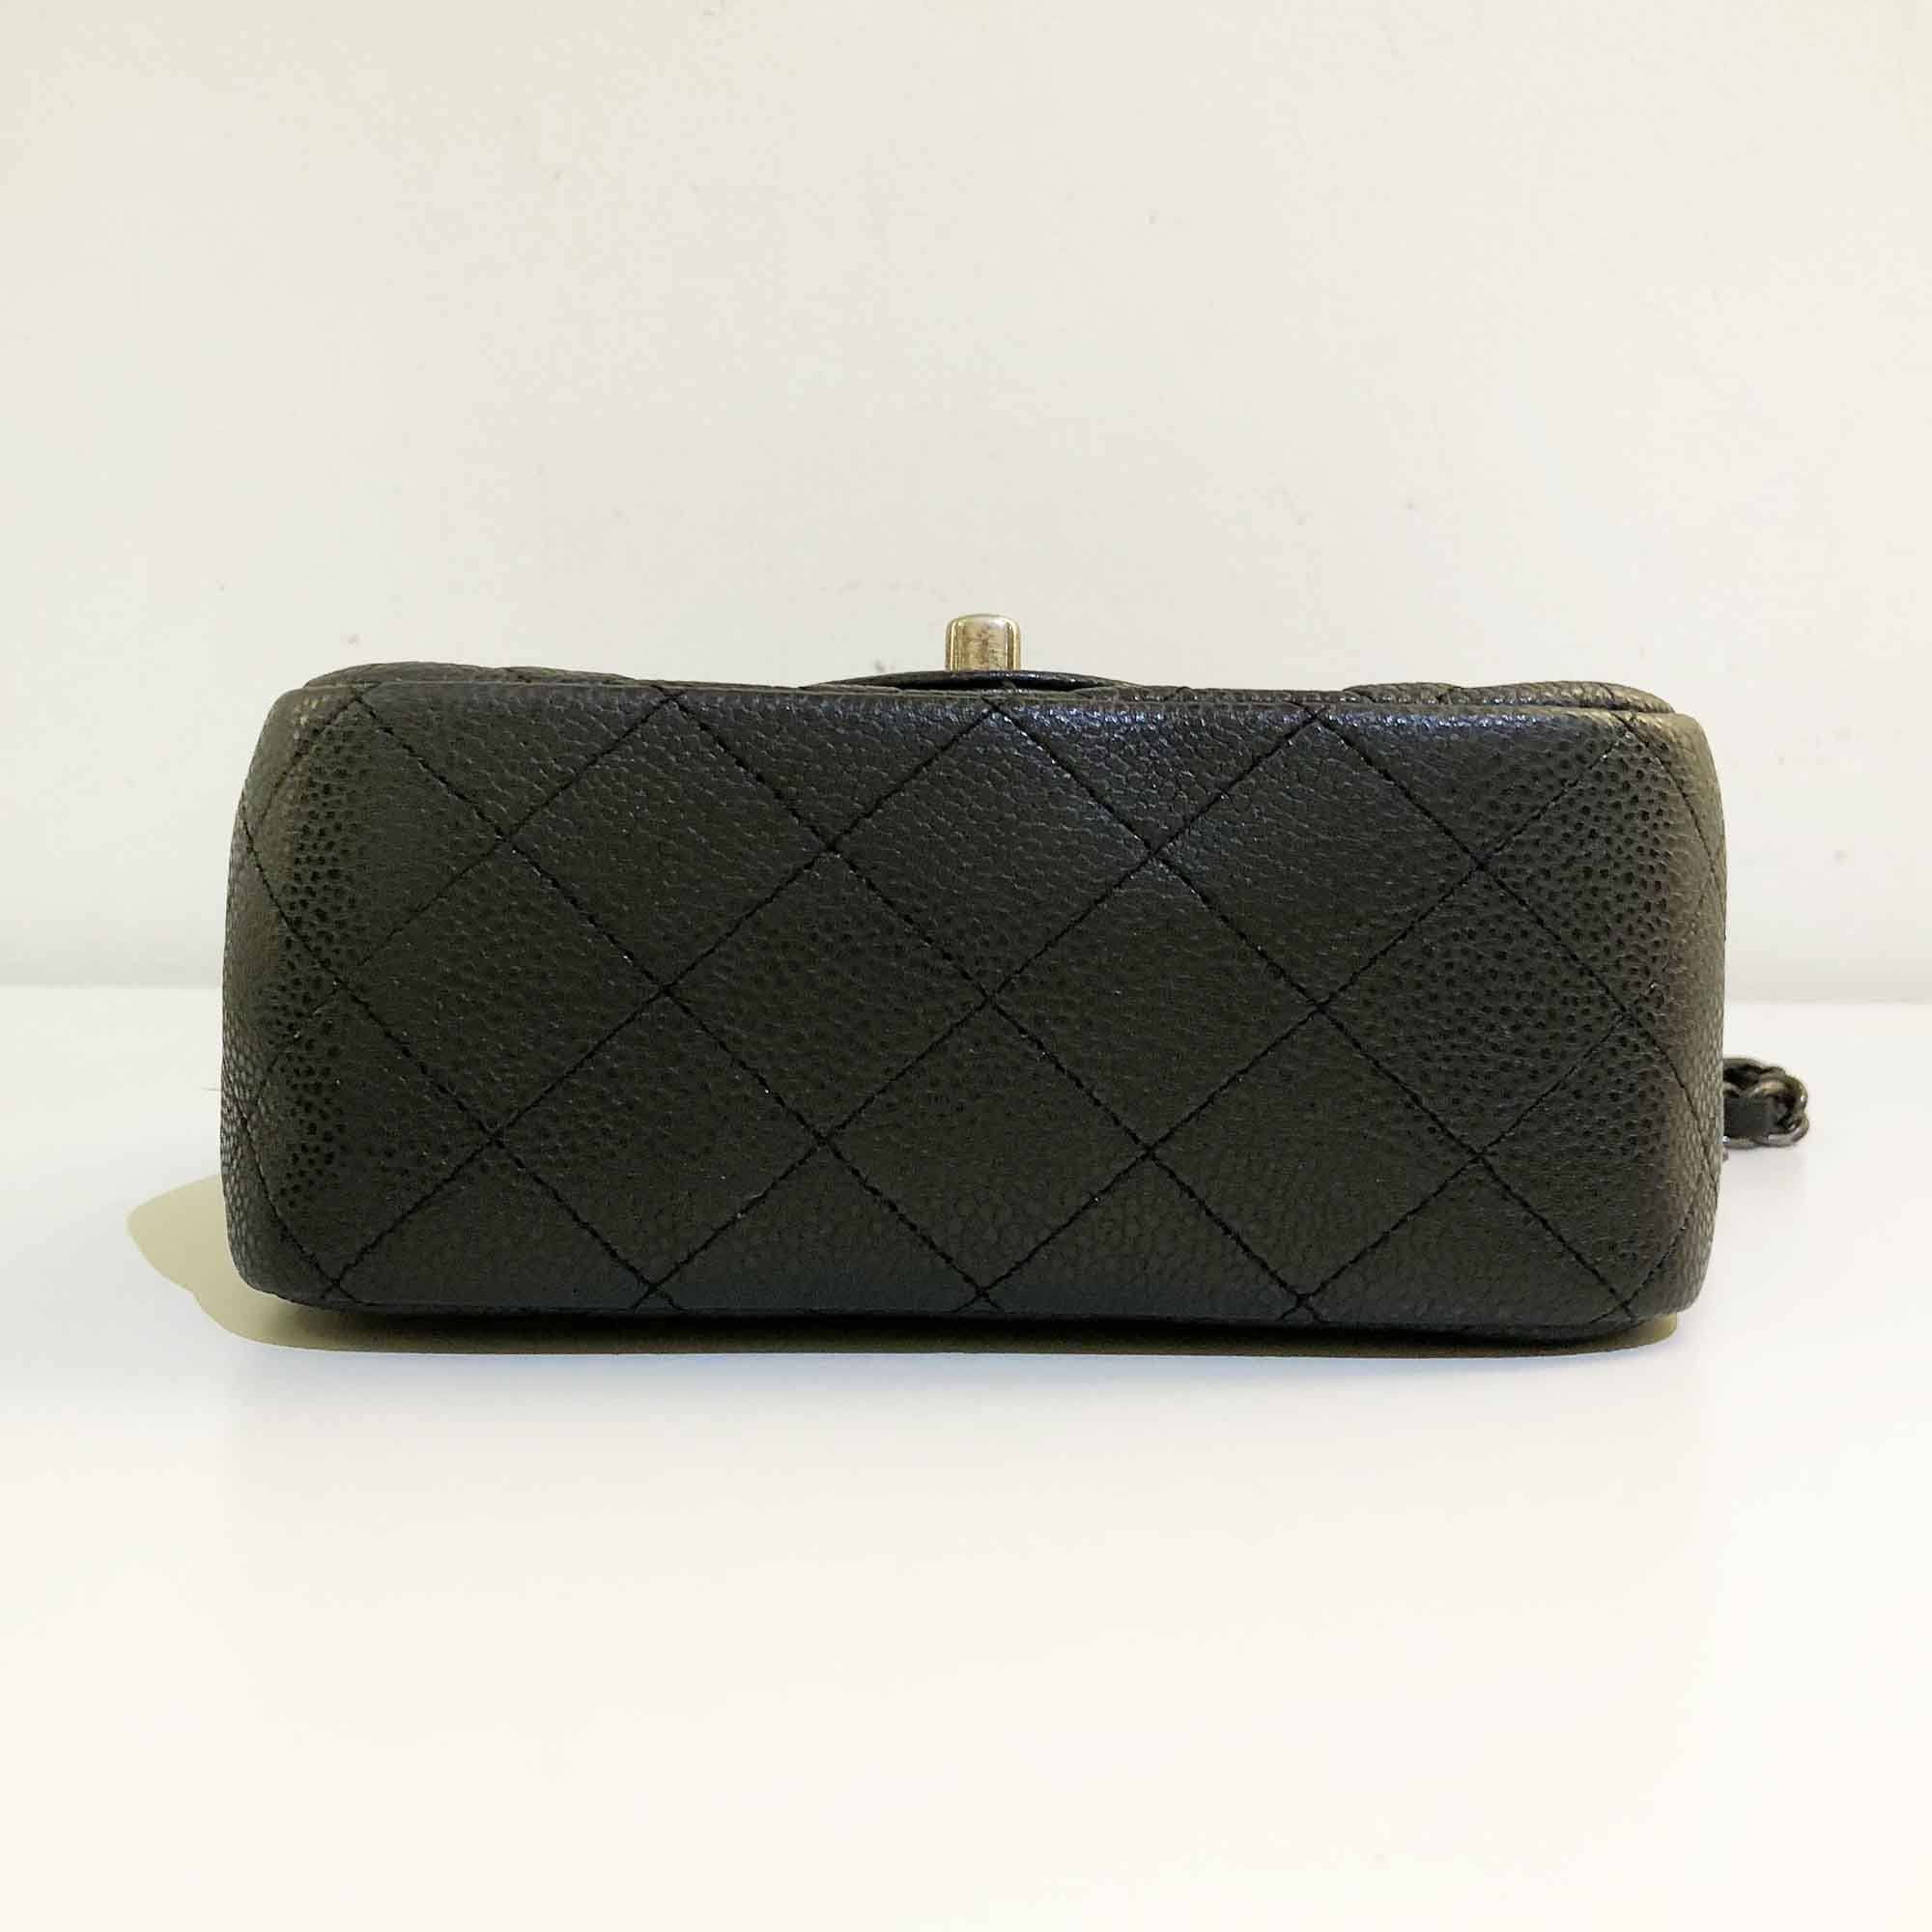 Chanel Caviar Black Flap Mini Square Bag